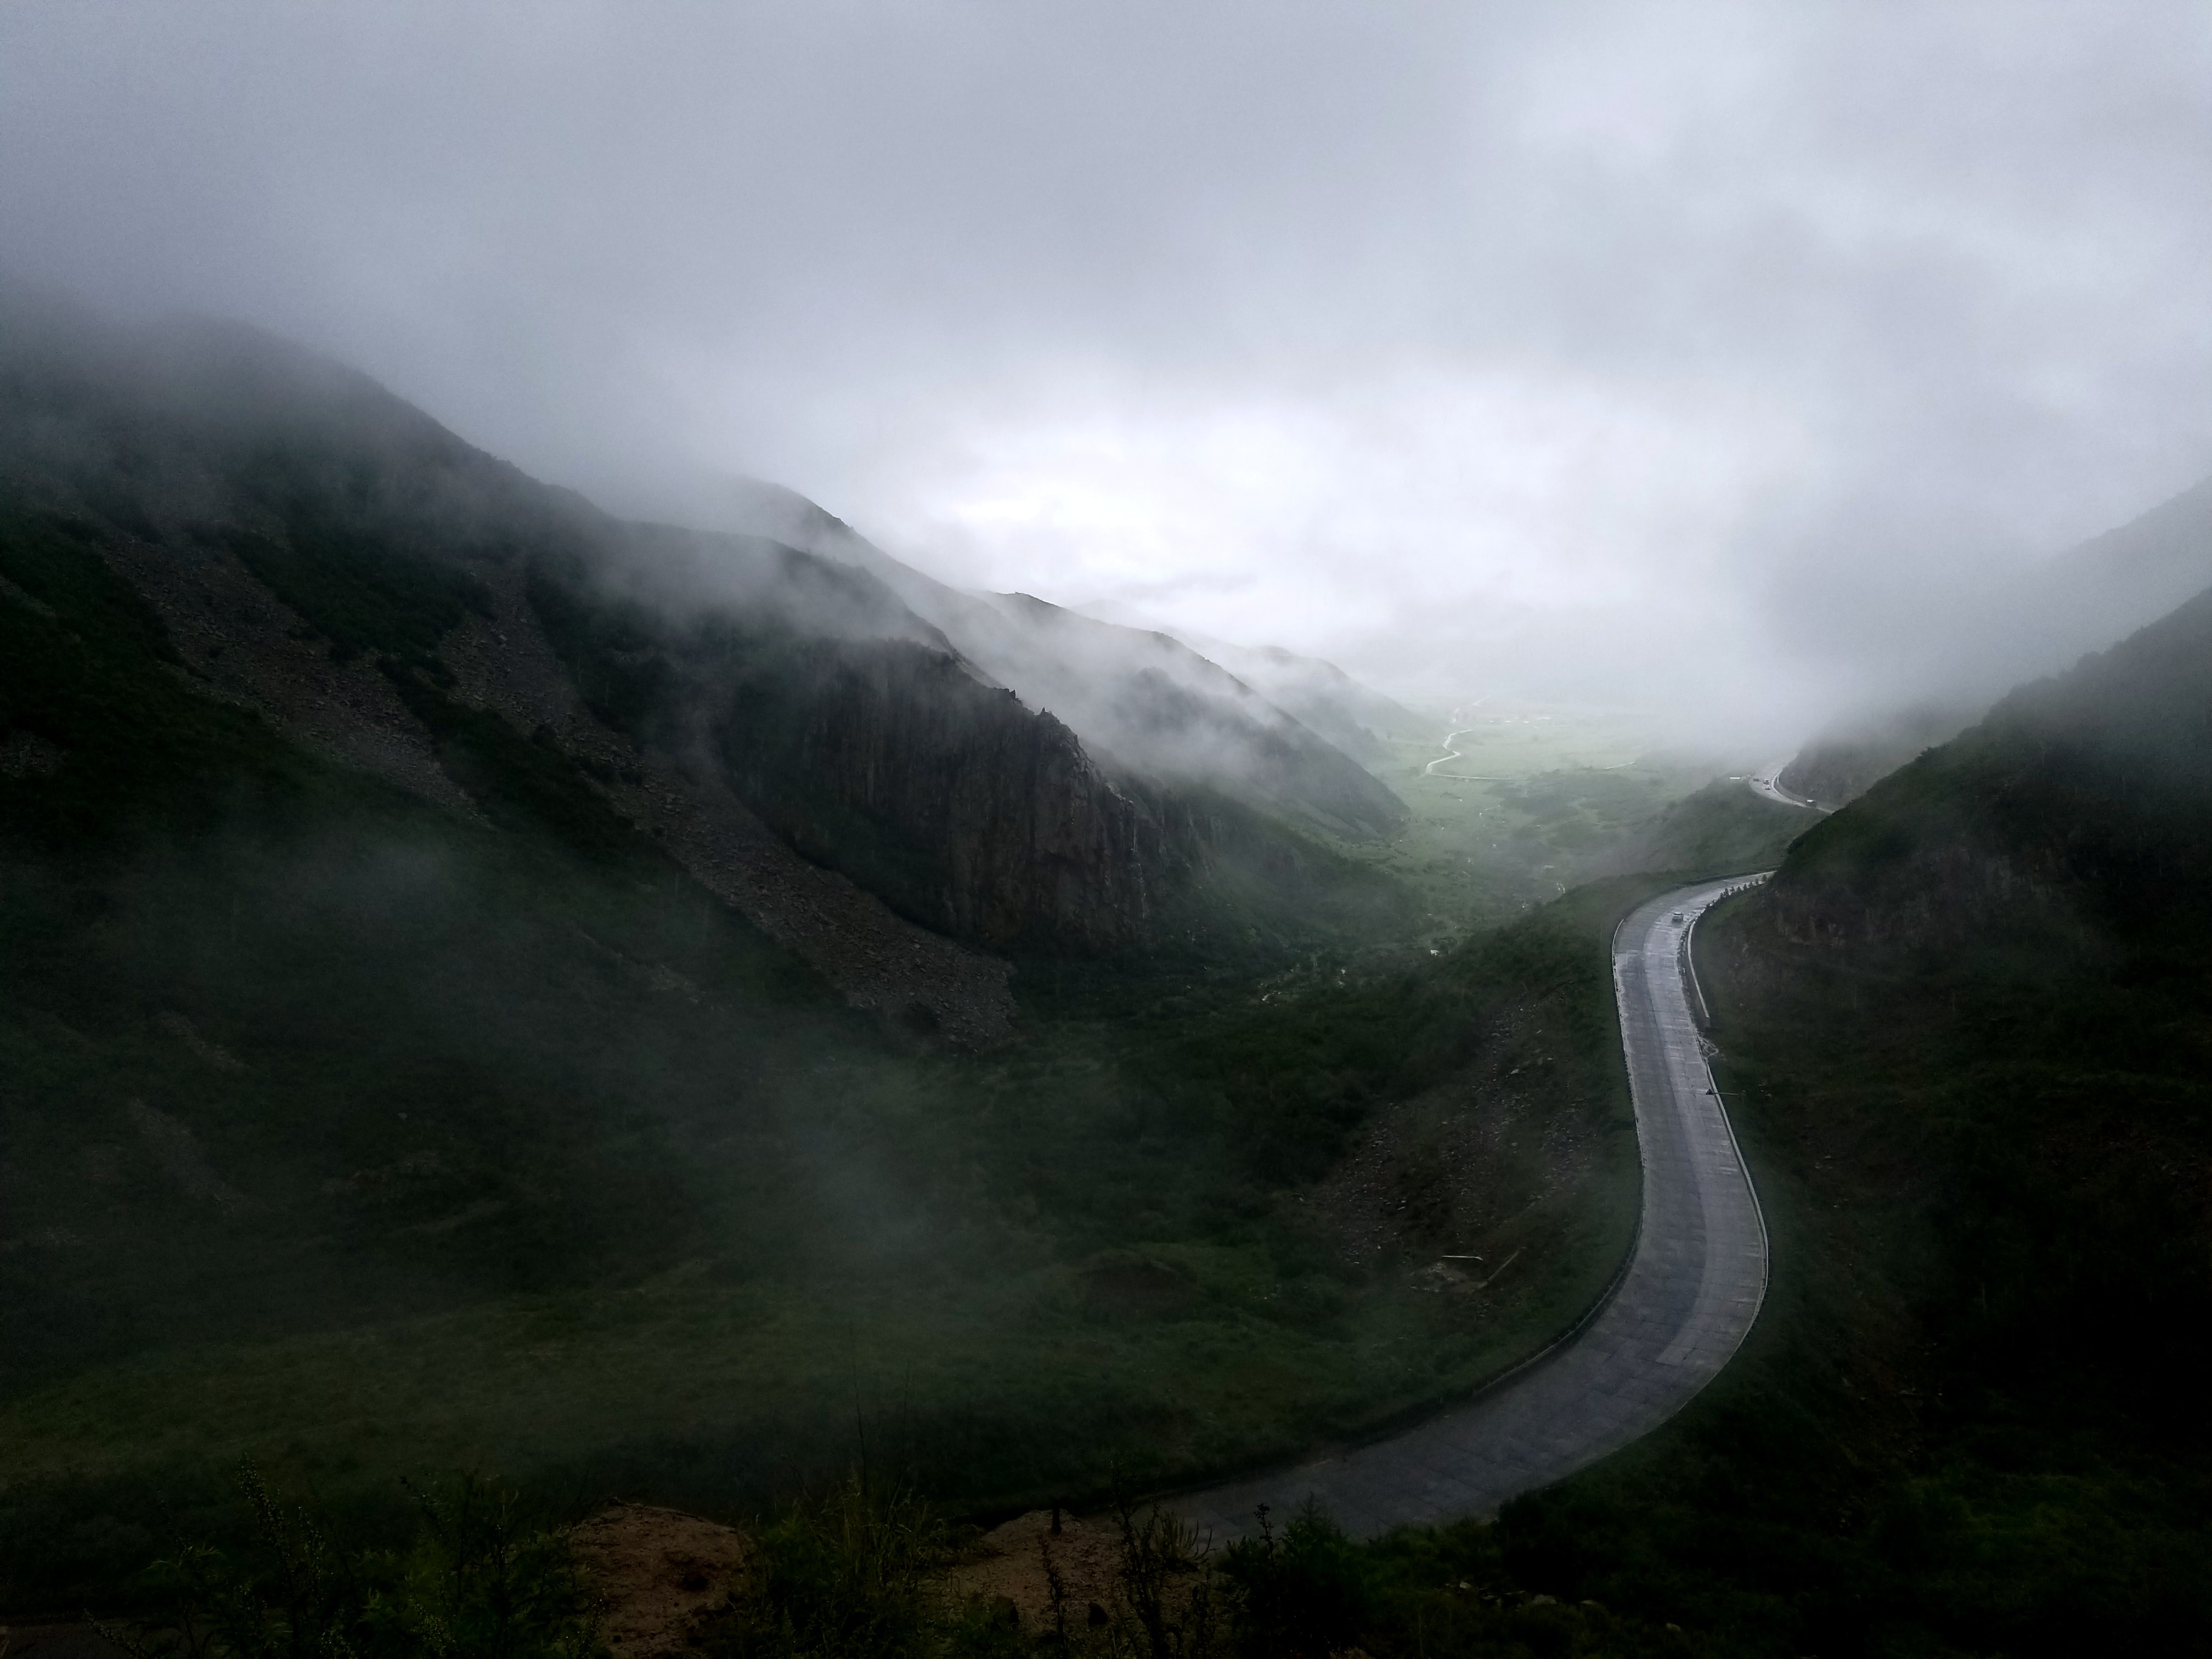 landscape photography of road near mountains